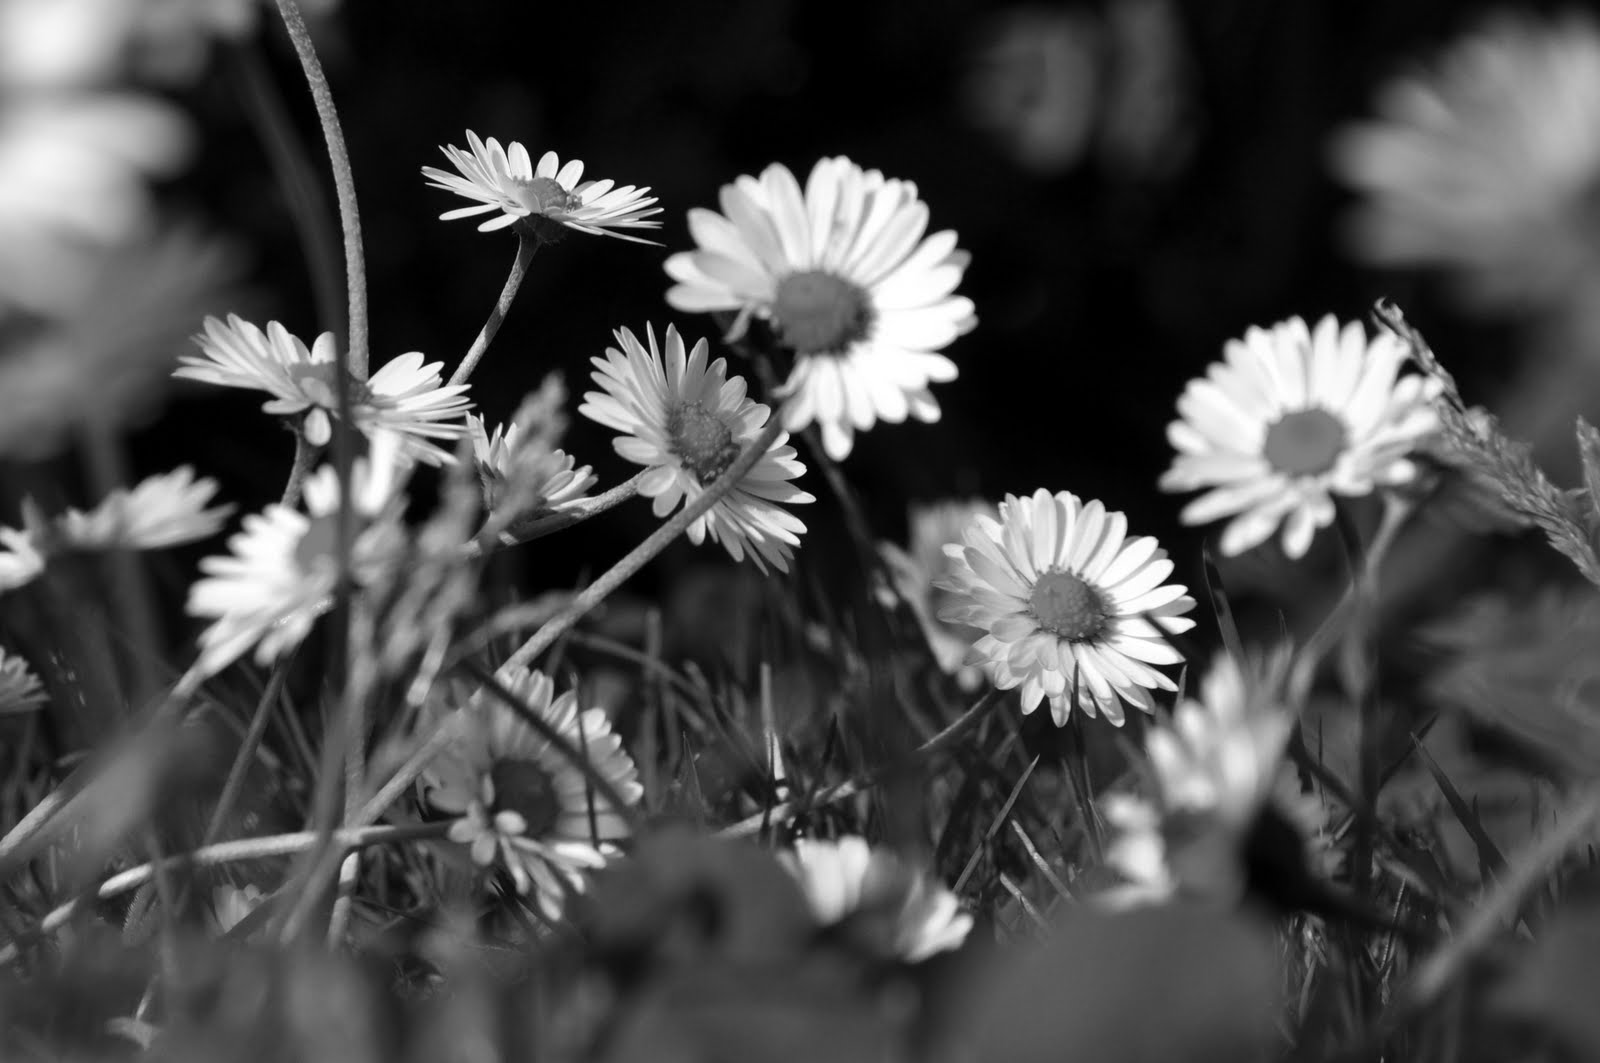 Black and White, Floral Photography - Personal Investigation.